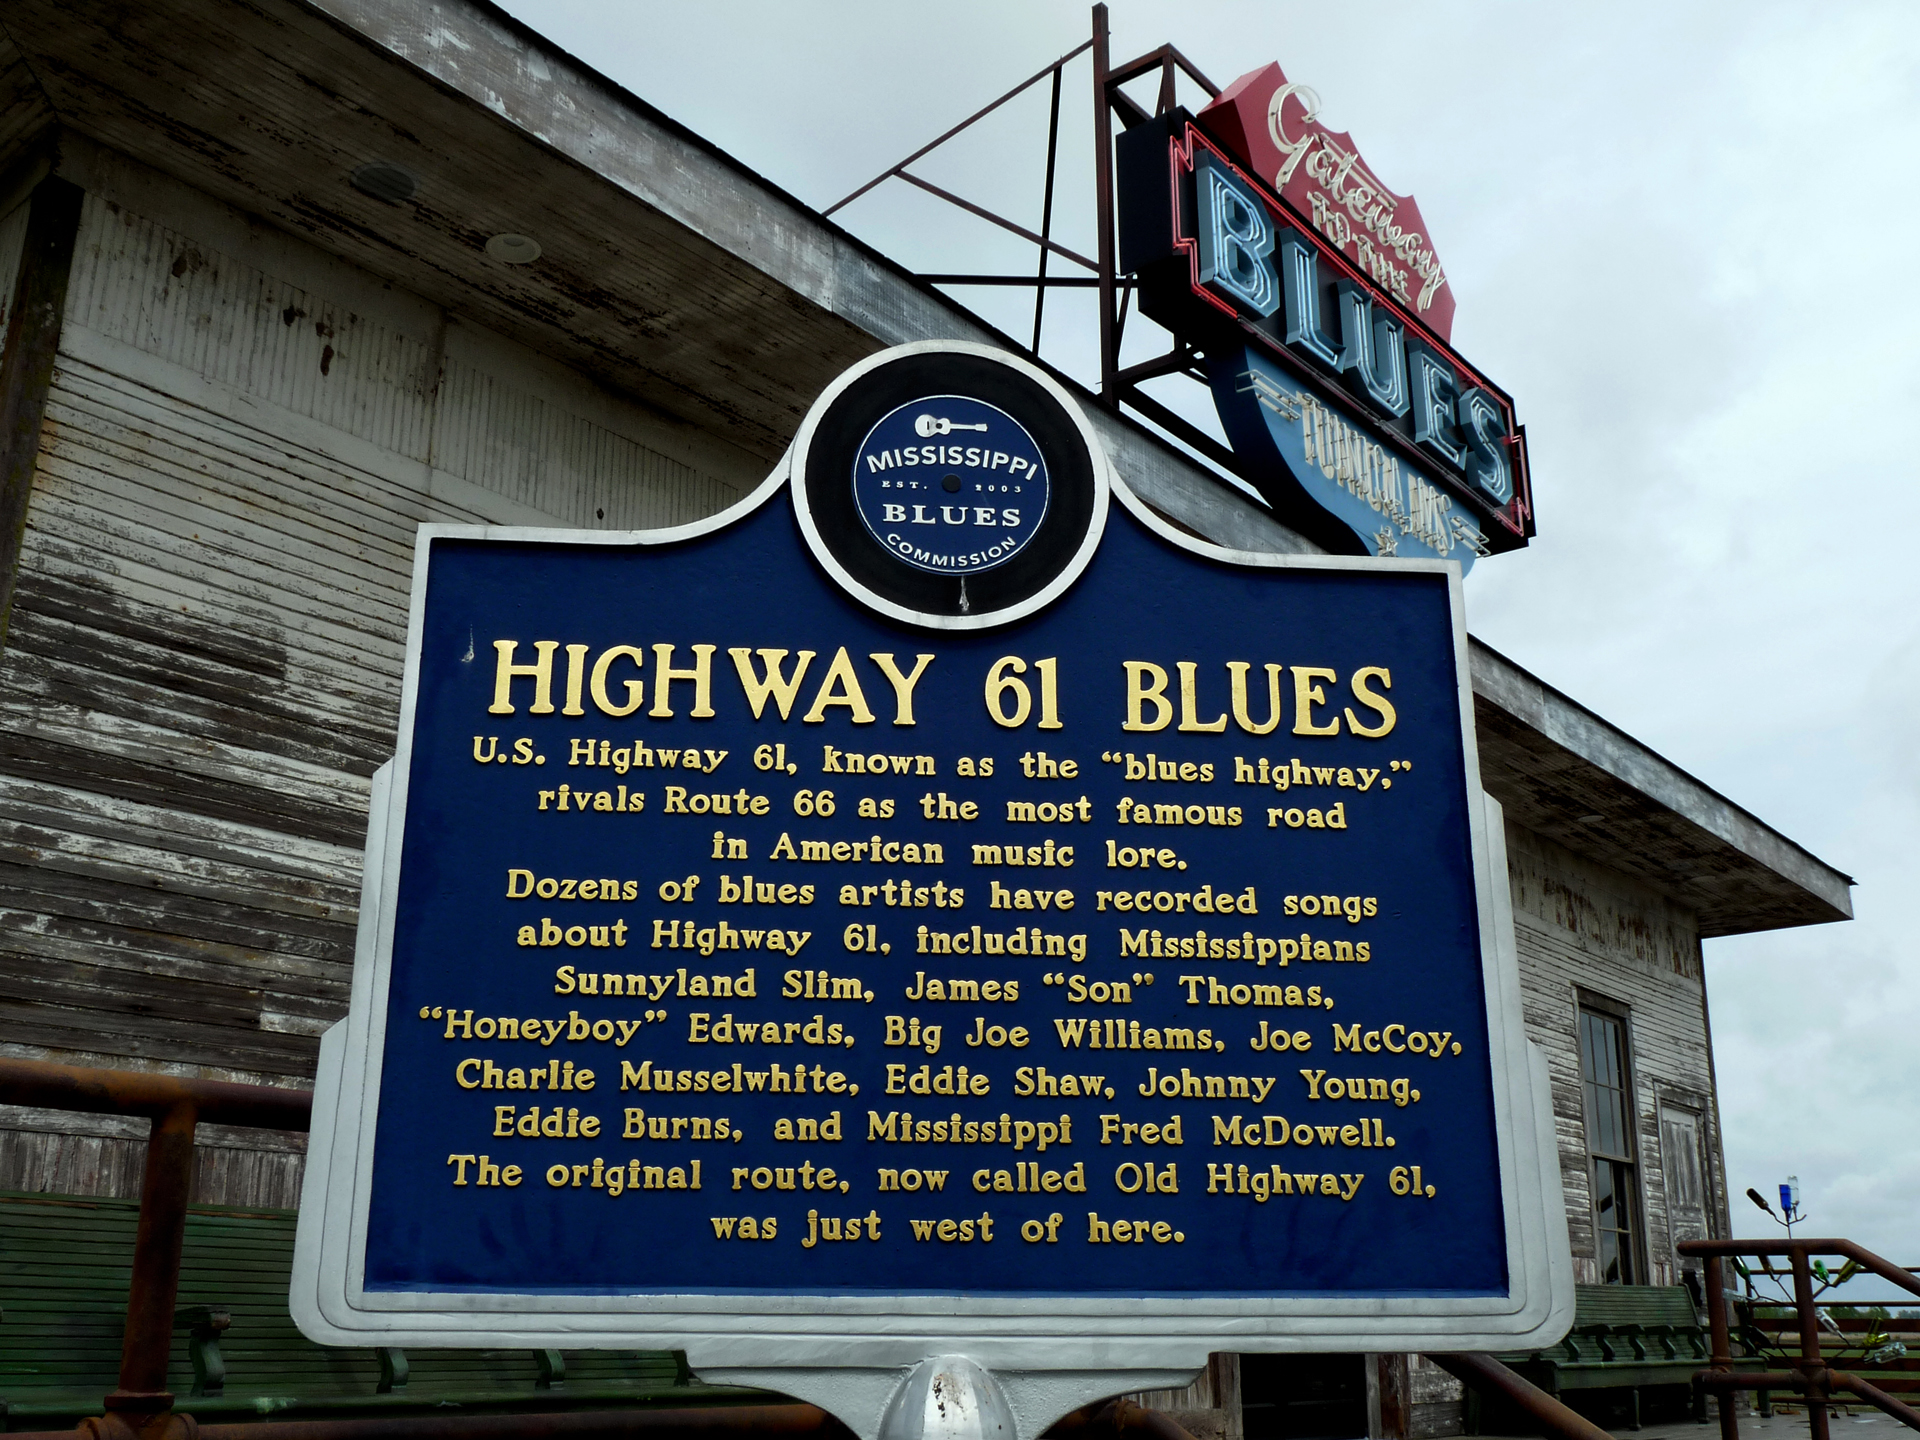 Mississippi Blues Trail marker for Highway 61